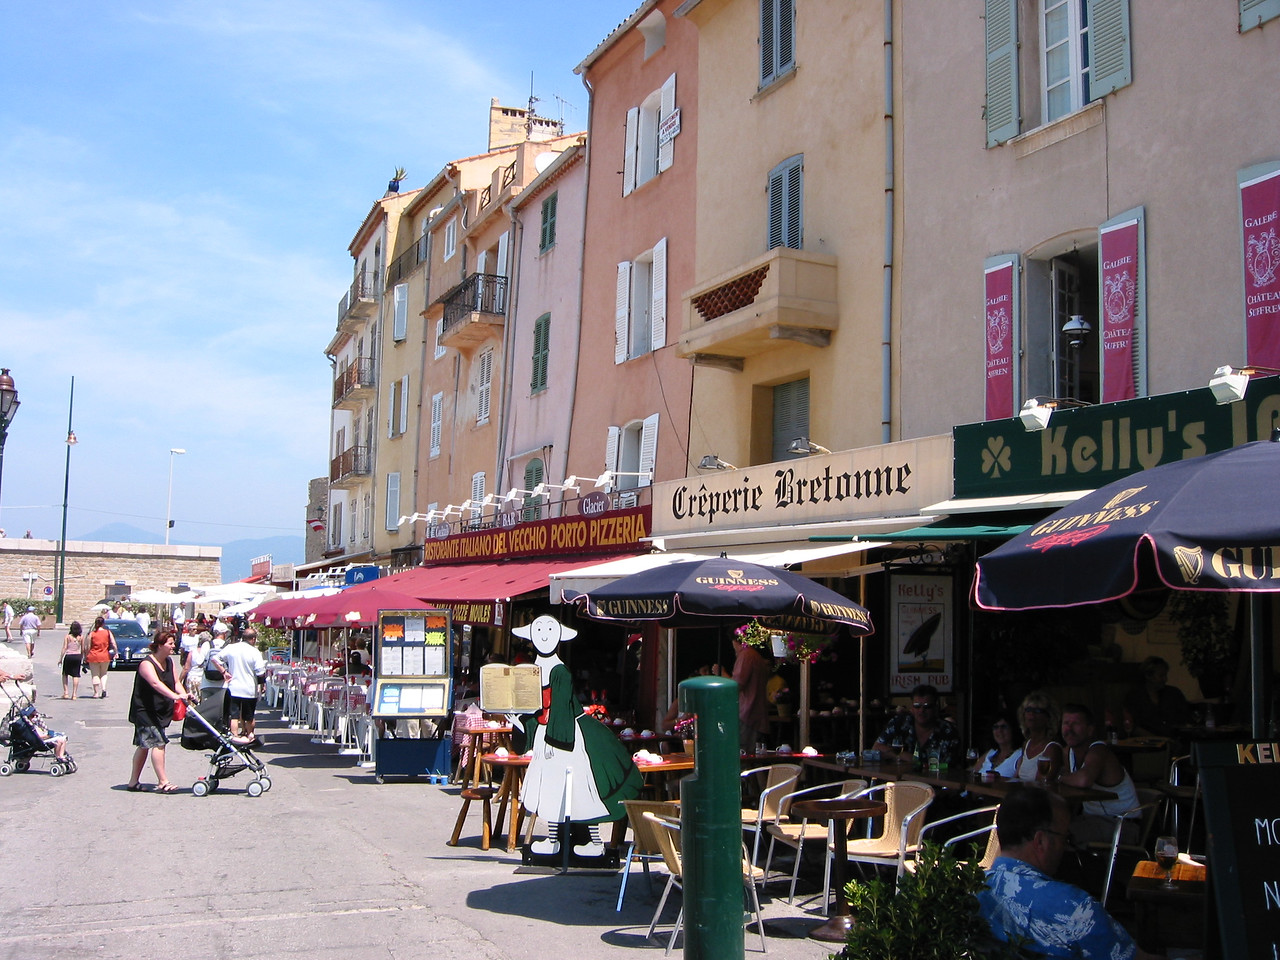 St Tropez. See that Crêperie Bretonne? I had this grill-pressed baguette with goat's cheese that I've been trying to relive ever since.